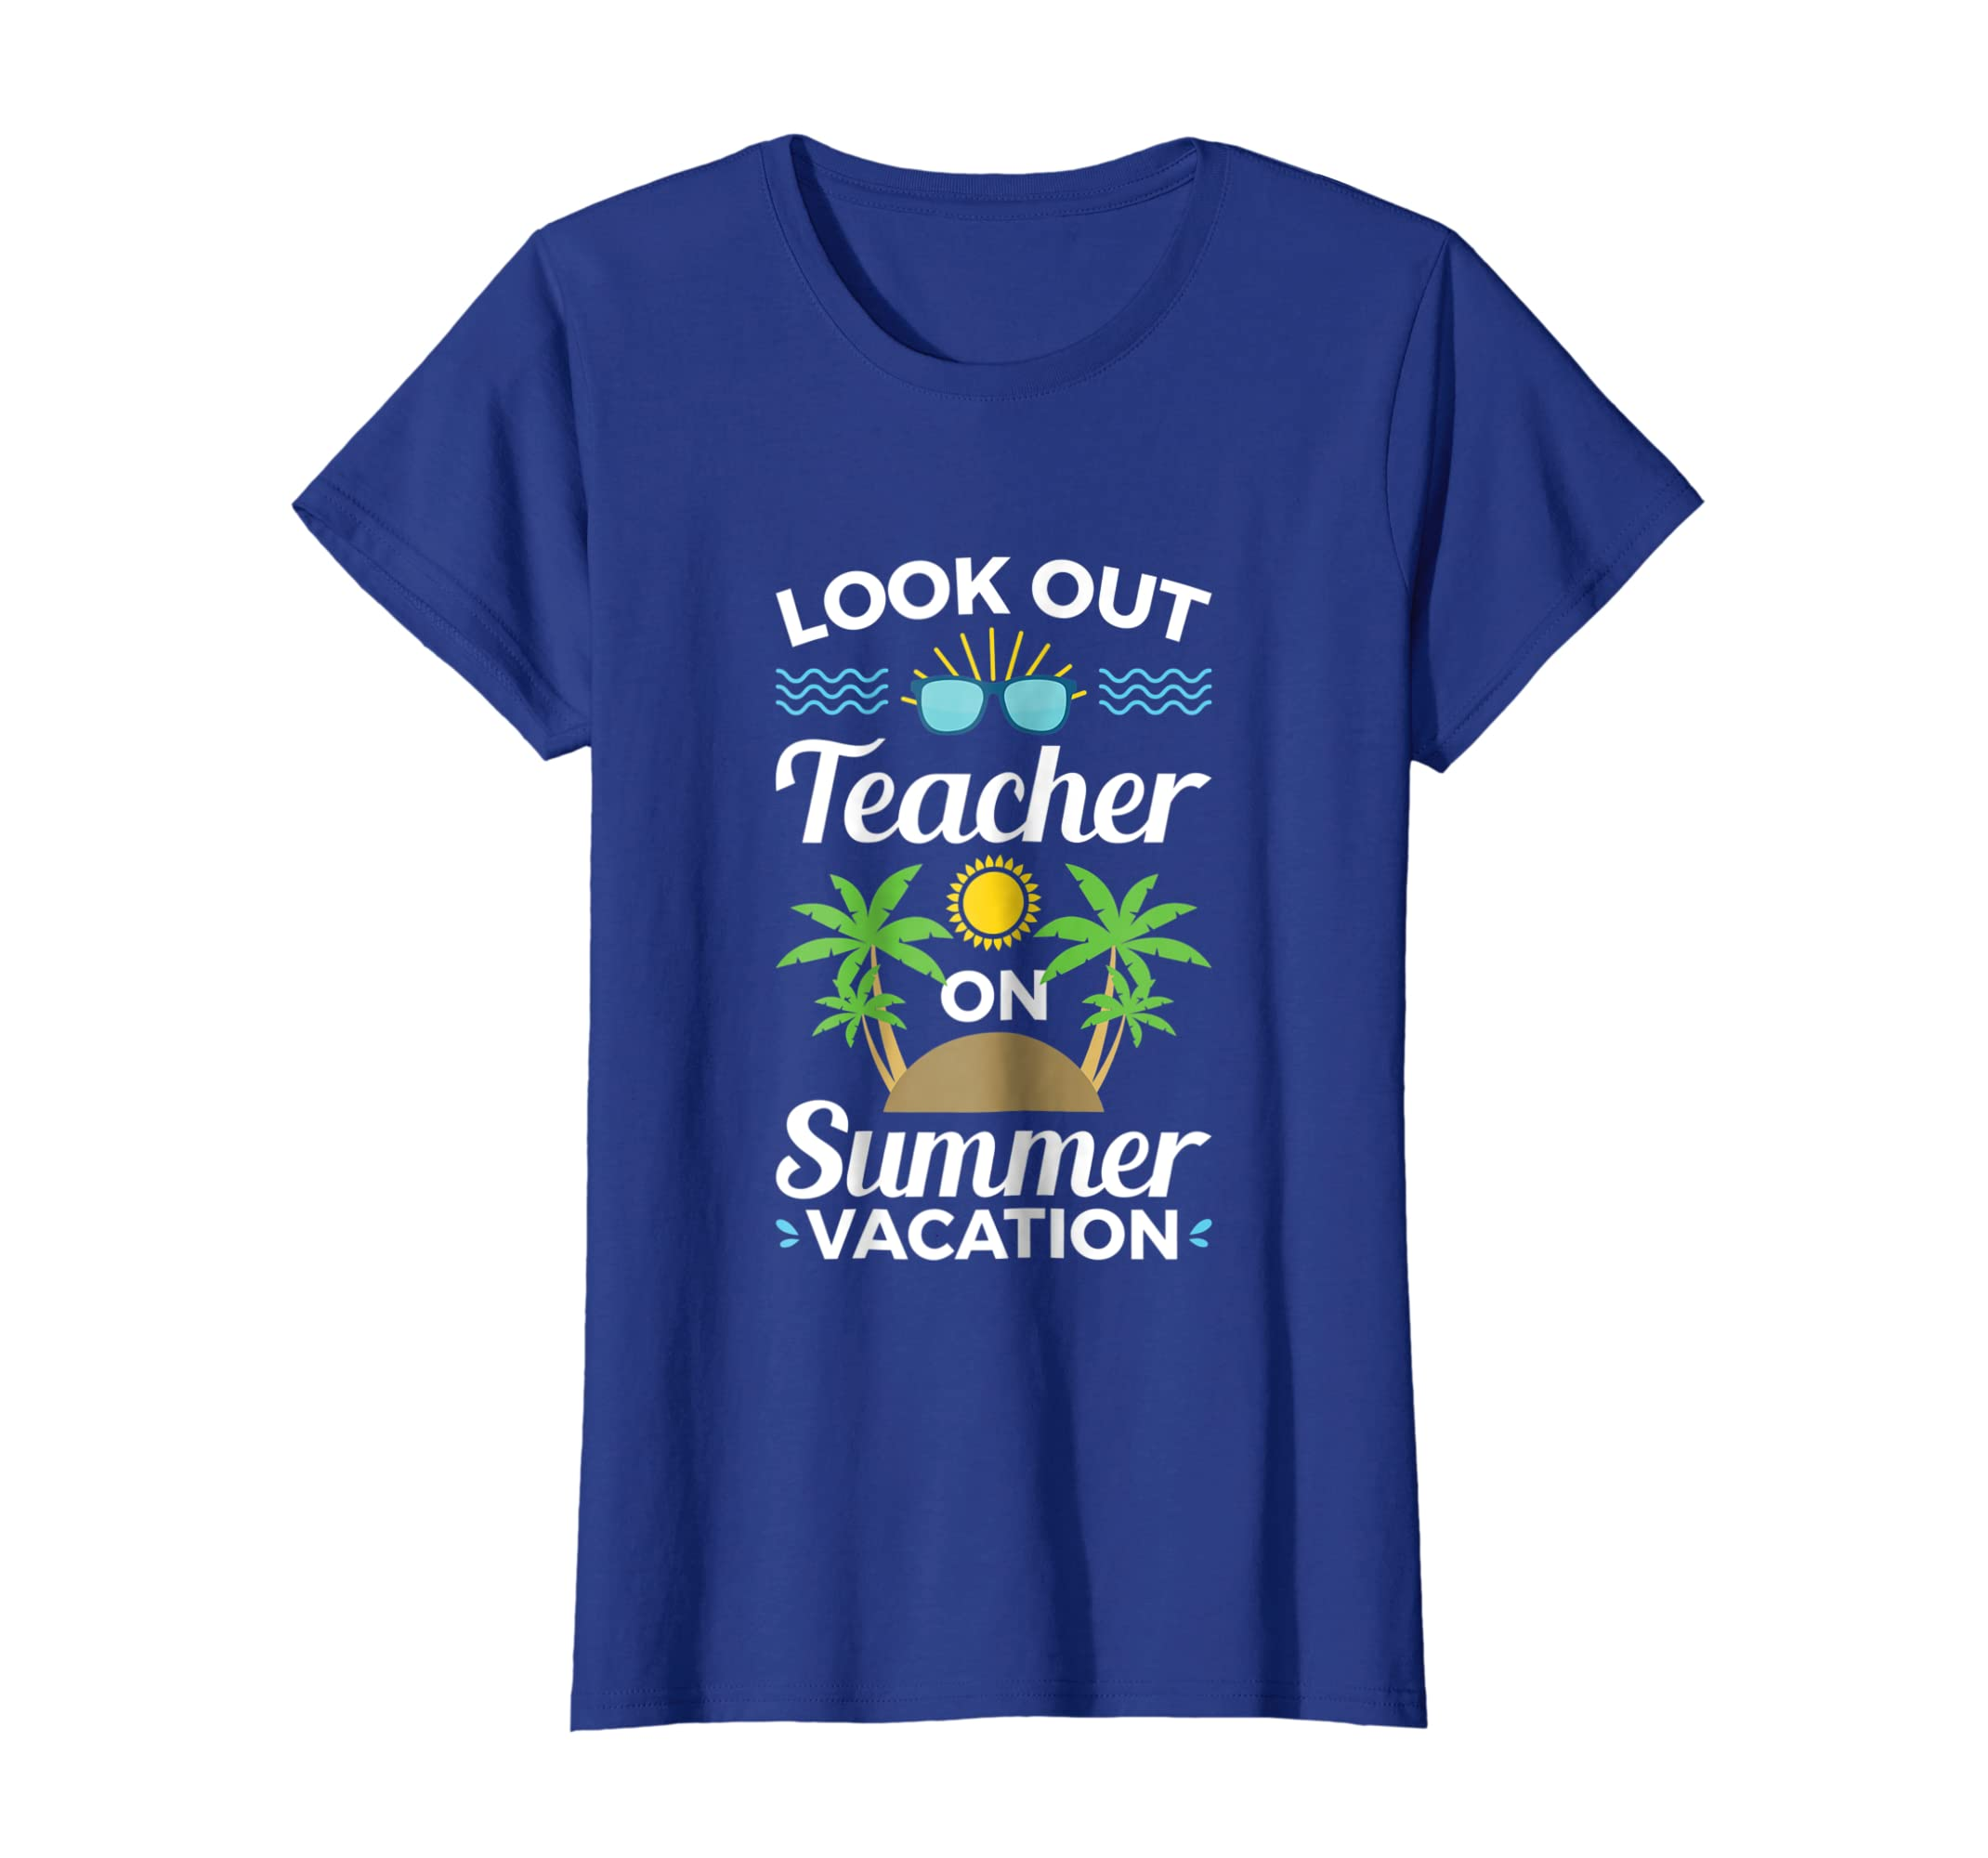 095520ee60d1 Amazon.com  Teacher Summer Vacation Gift Funny tshirt End of School Year   Clothing